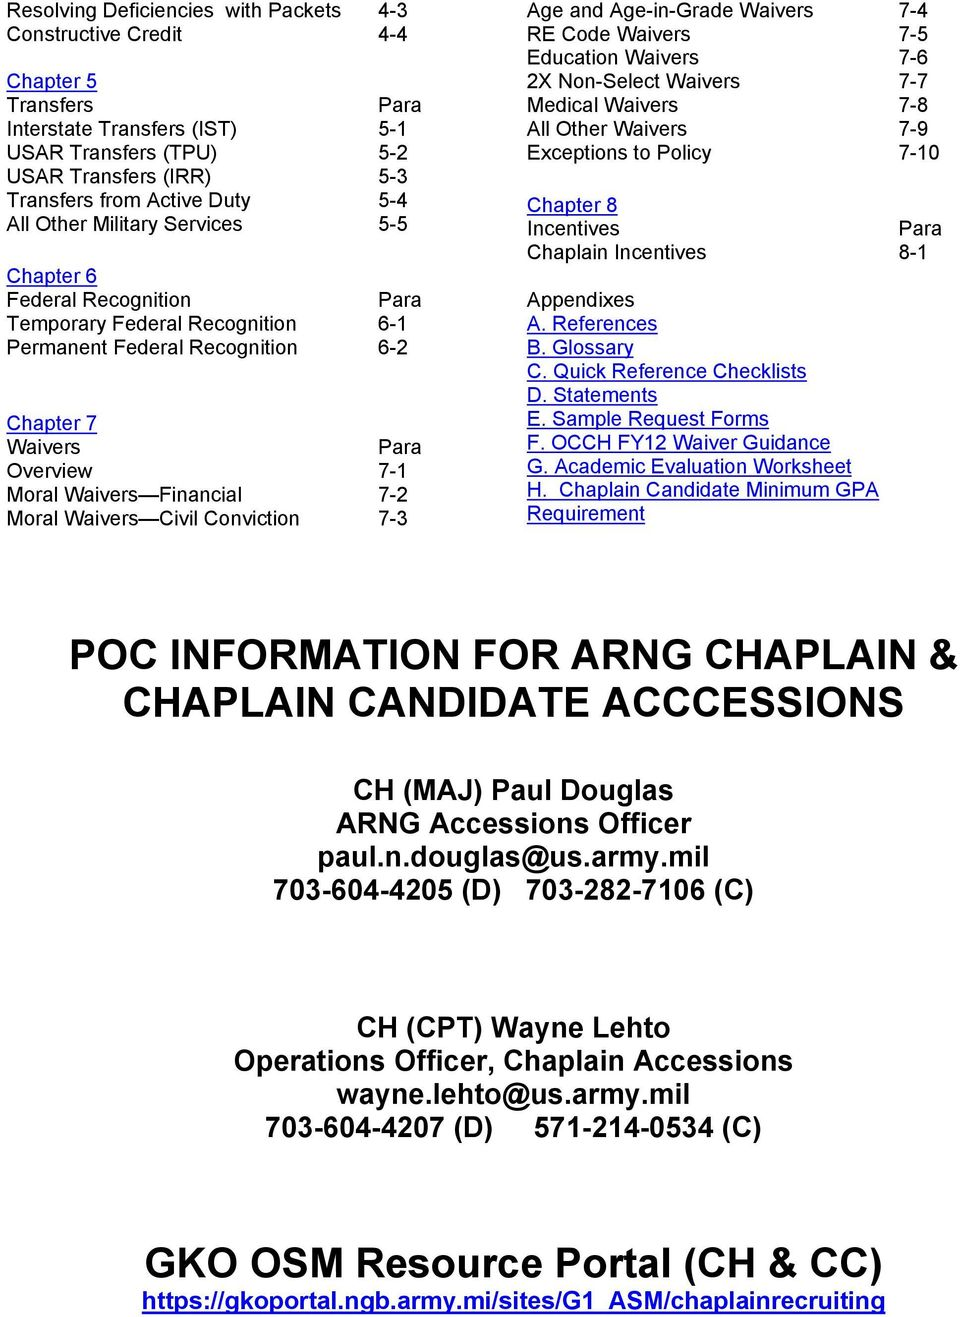 Fy12 army national guard standard operating procedures for chaplain 7 2 moral waivers civil conviction 7 3 age and age in altavistaventures Choice Image